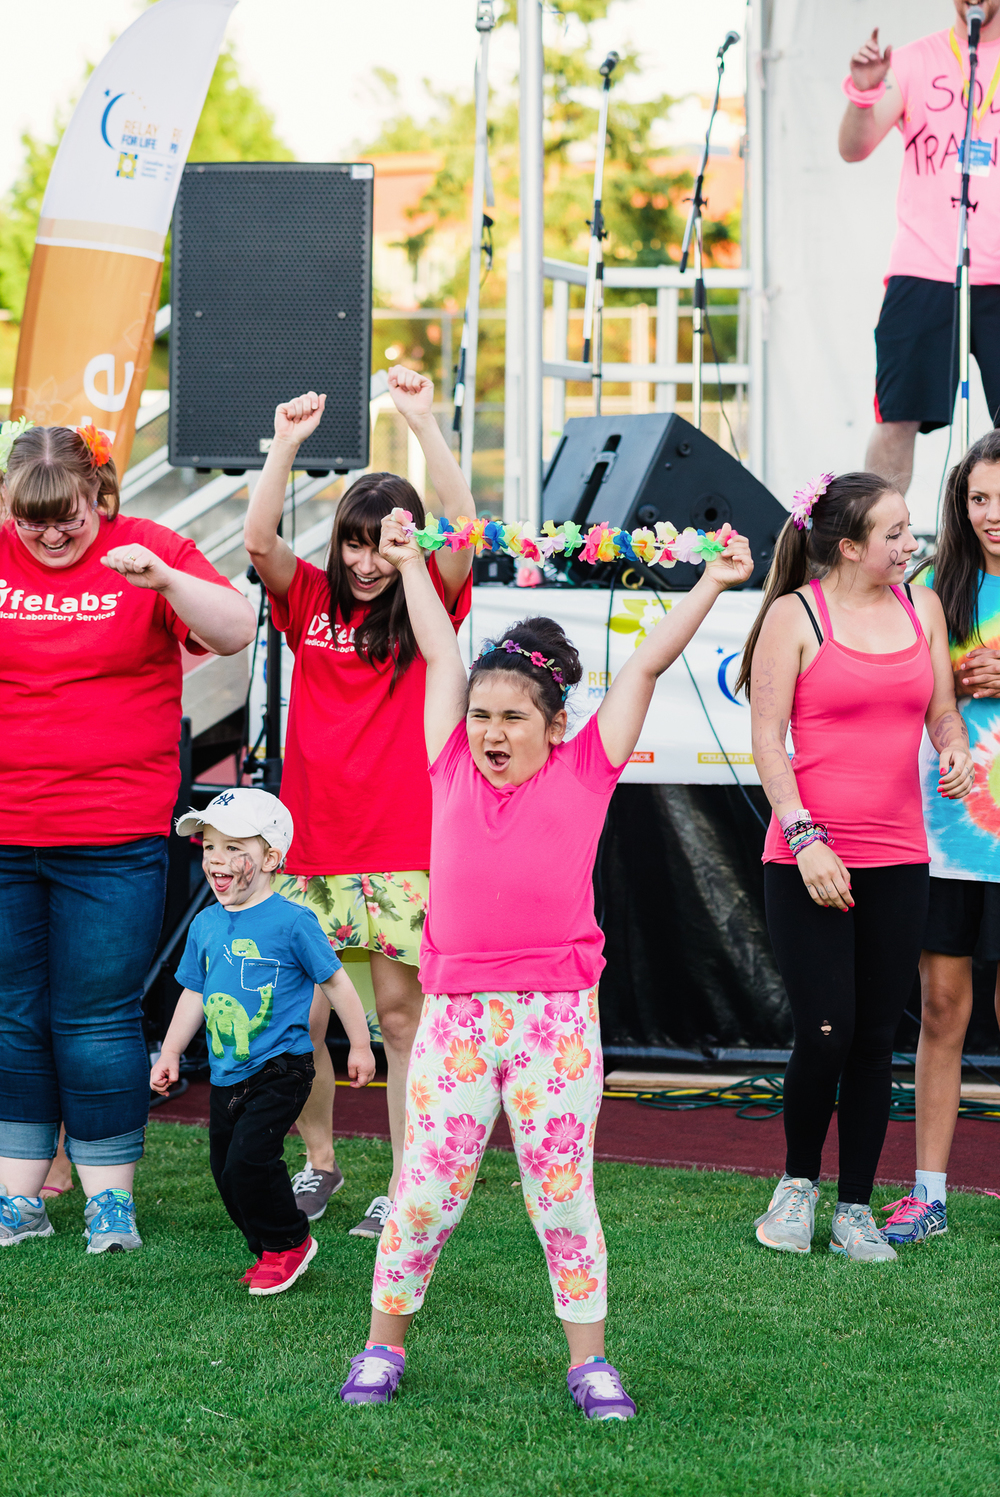 Lily_and_Lane_Relay_For_Life_Victoria_2015 (270).jpg